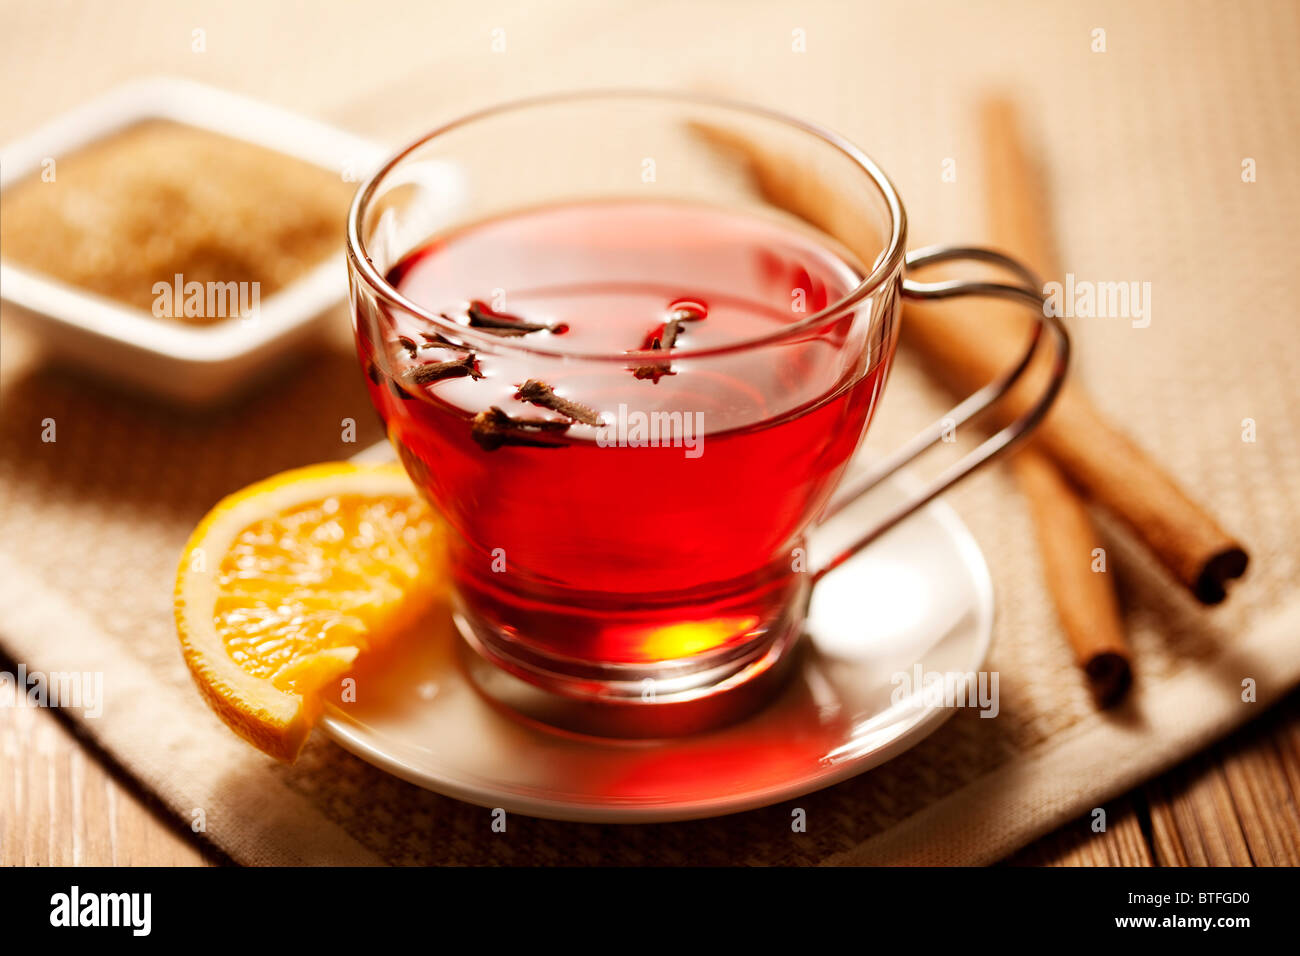 toddy or mulled wine - Stock Image